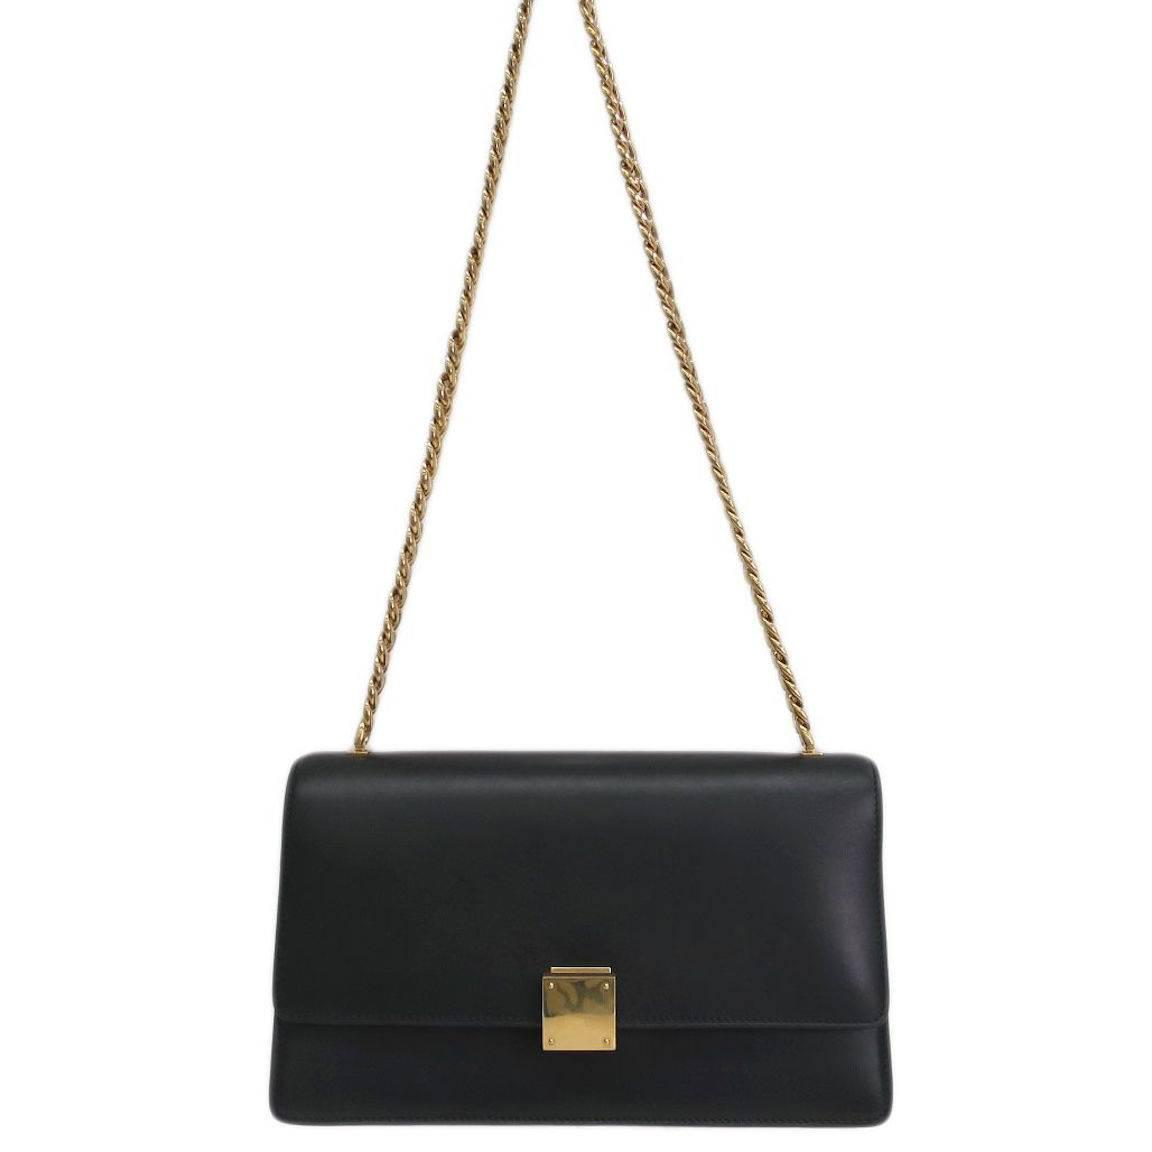 Celine Black Calfskin Leather Gold Chain Hardware Flap Box ...